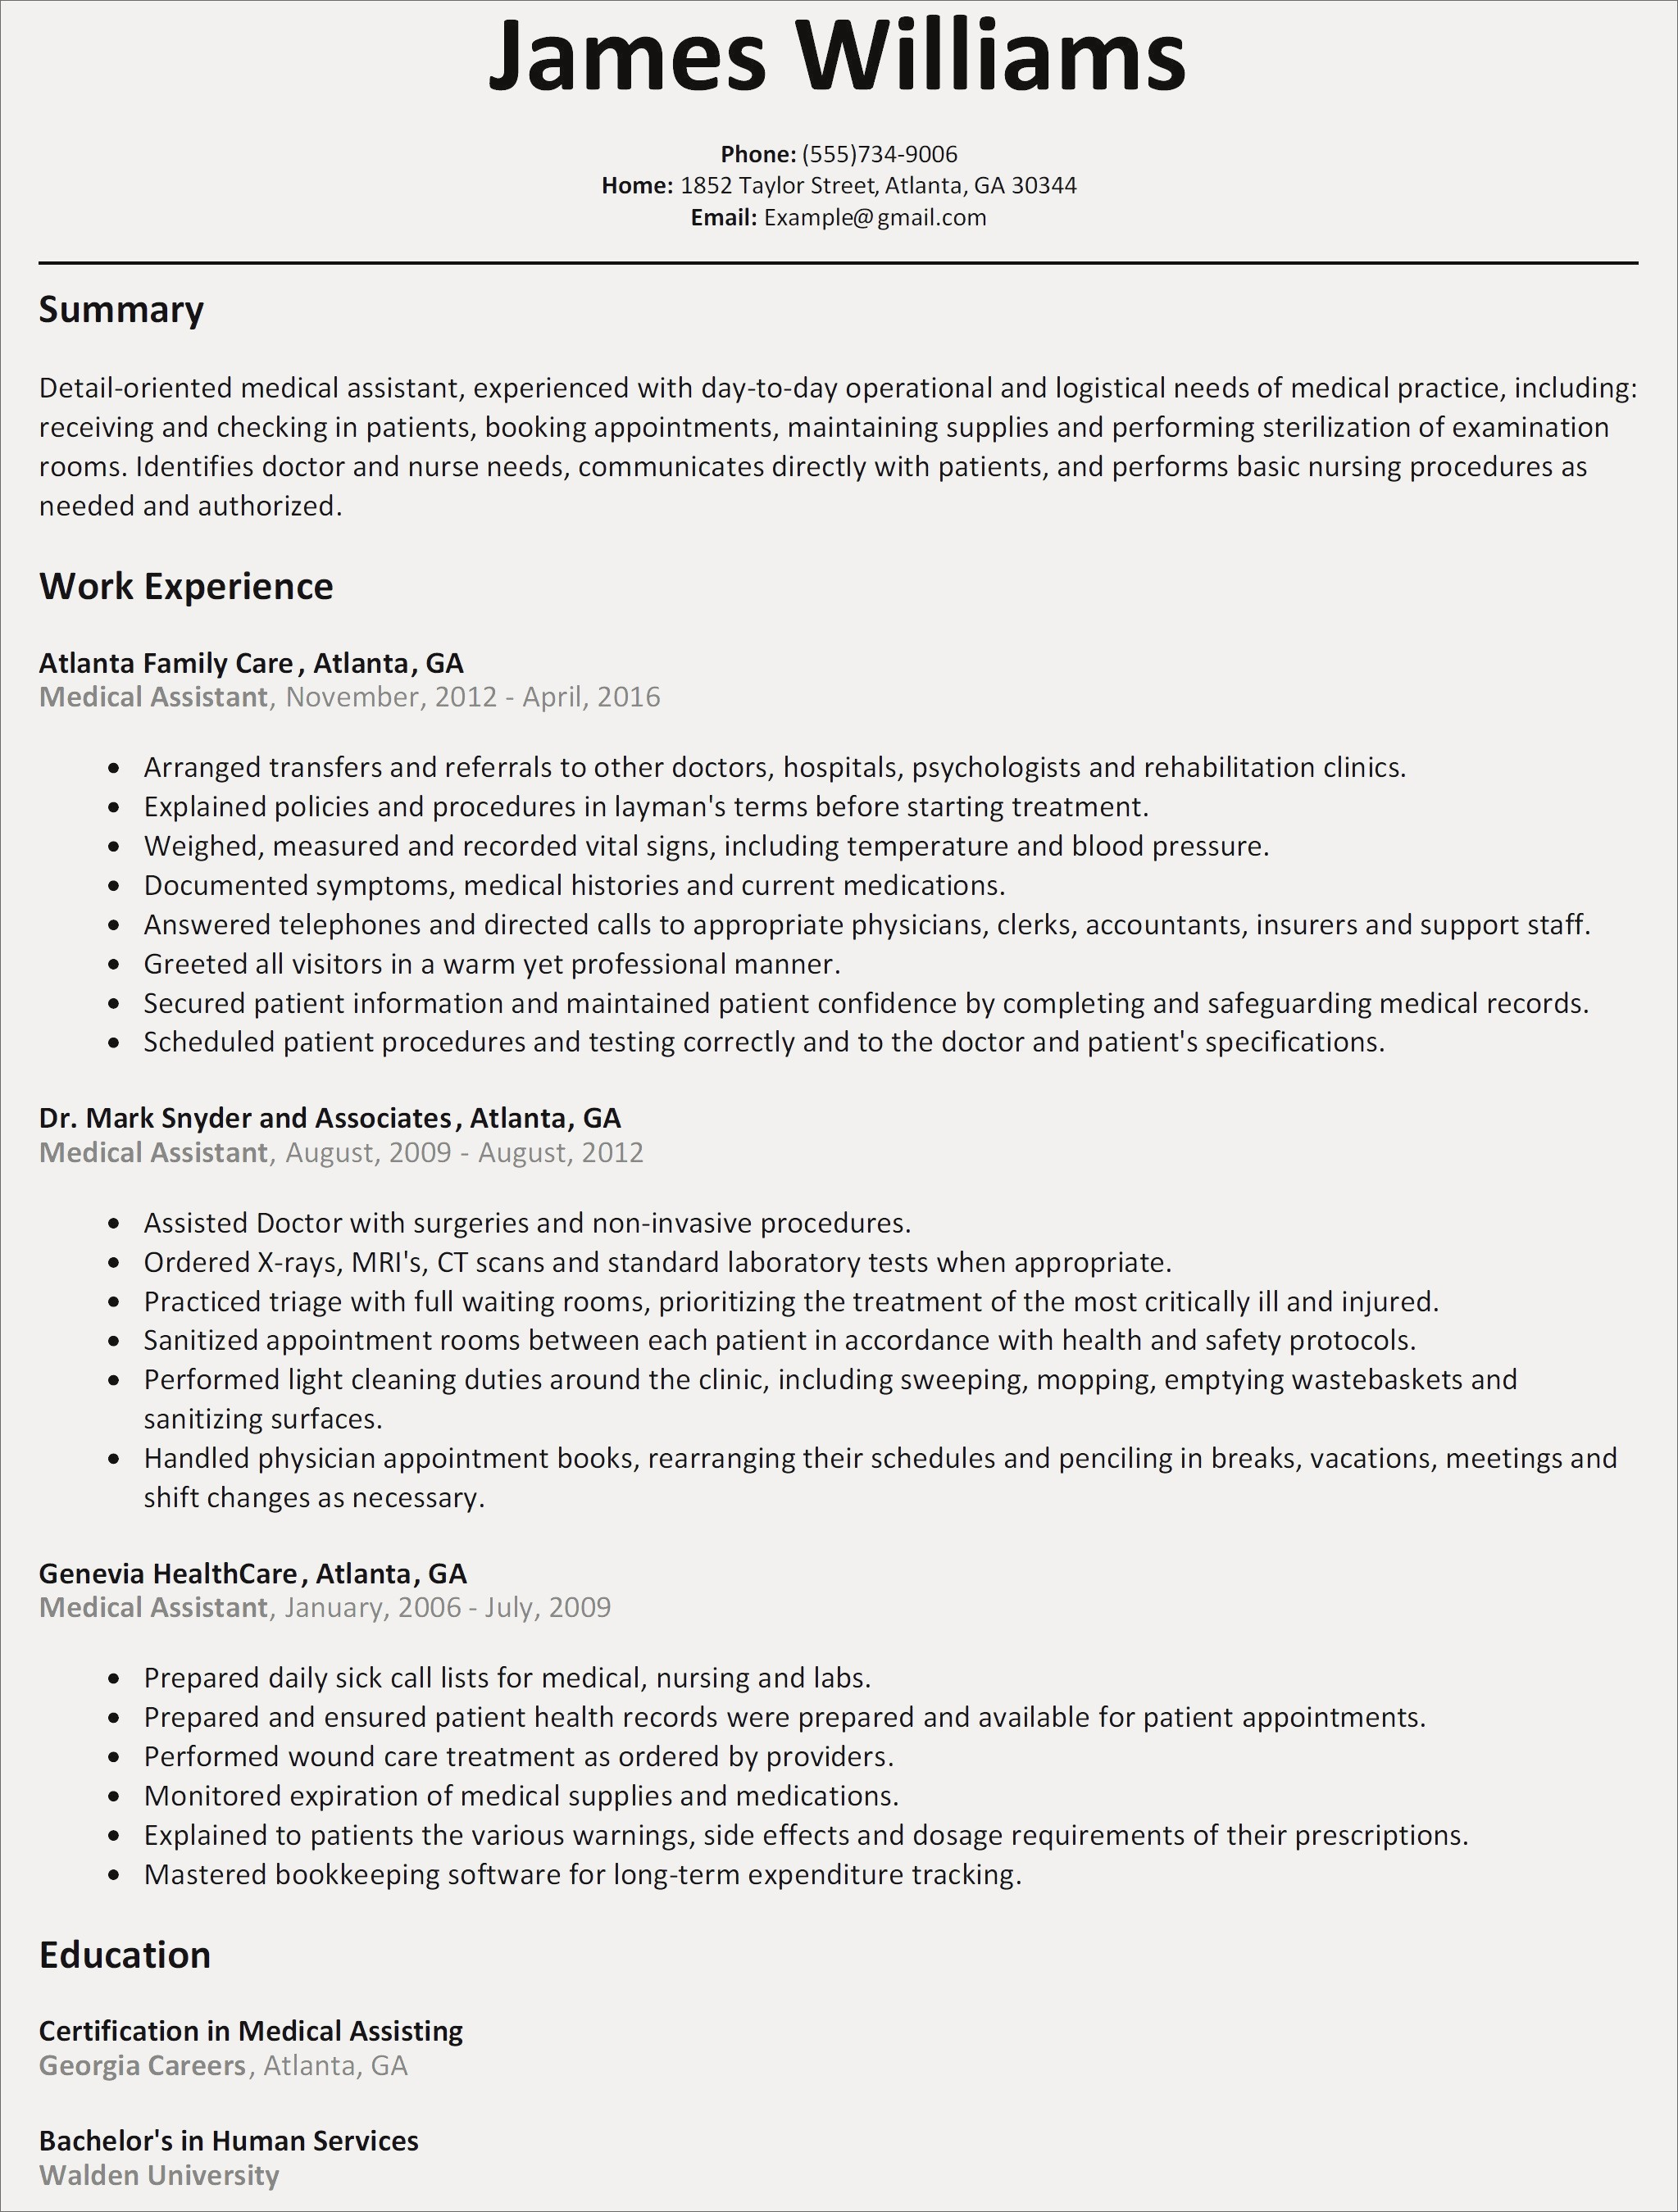 Teaching Resume Template Microsoft Word - Microsoft Word Template for Resume Save Free Resume Template for